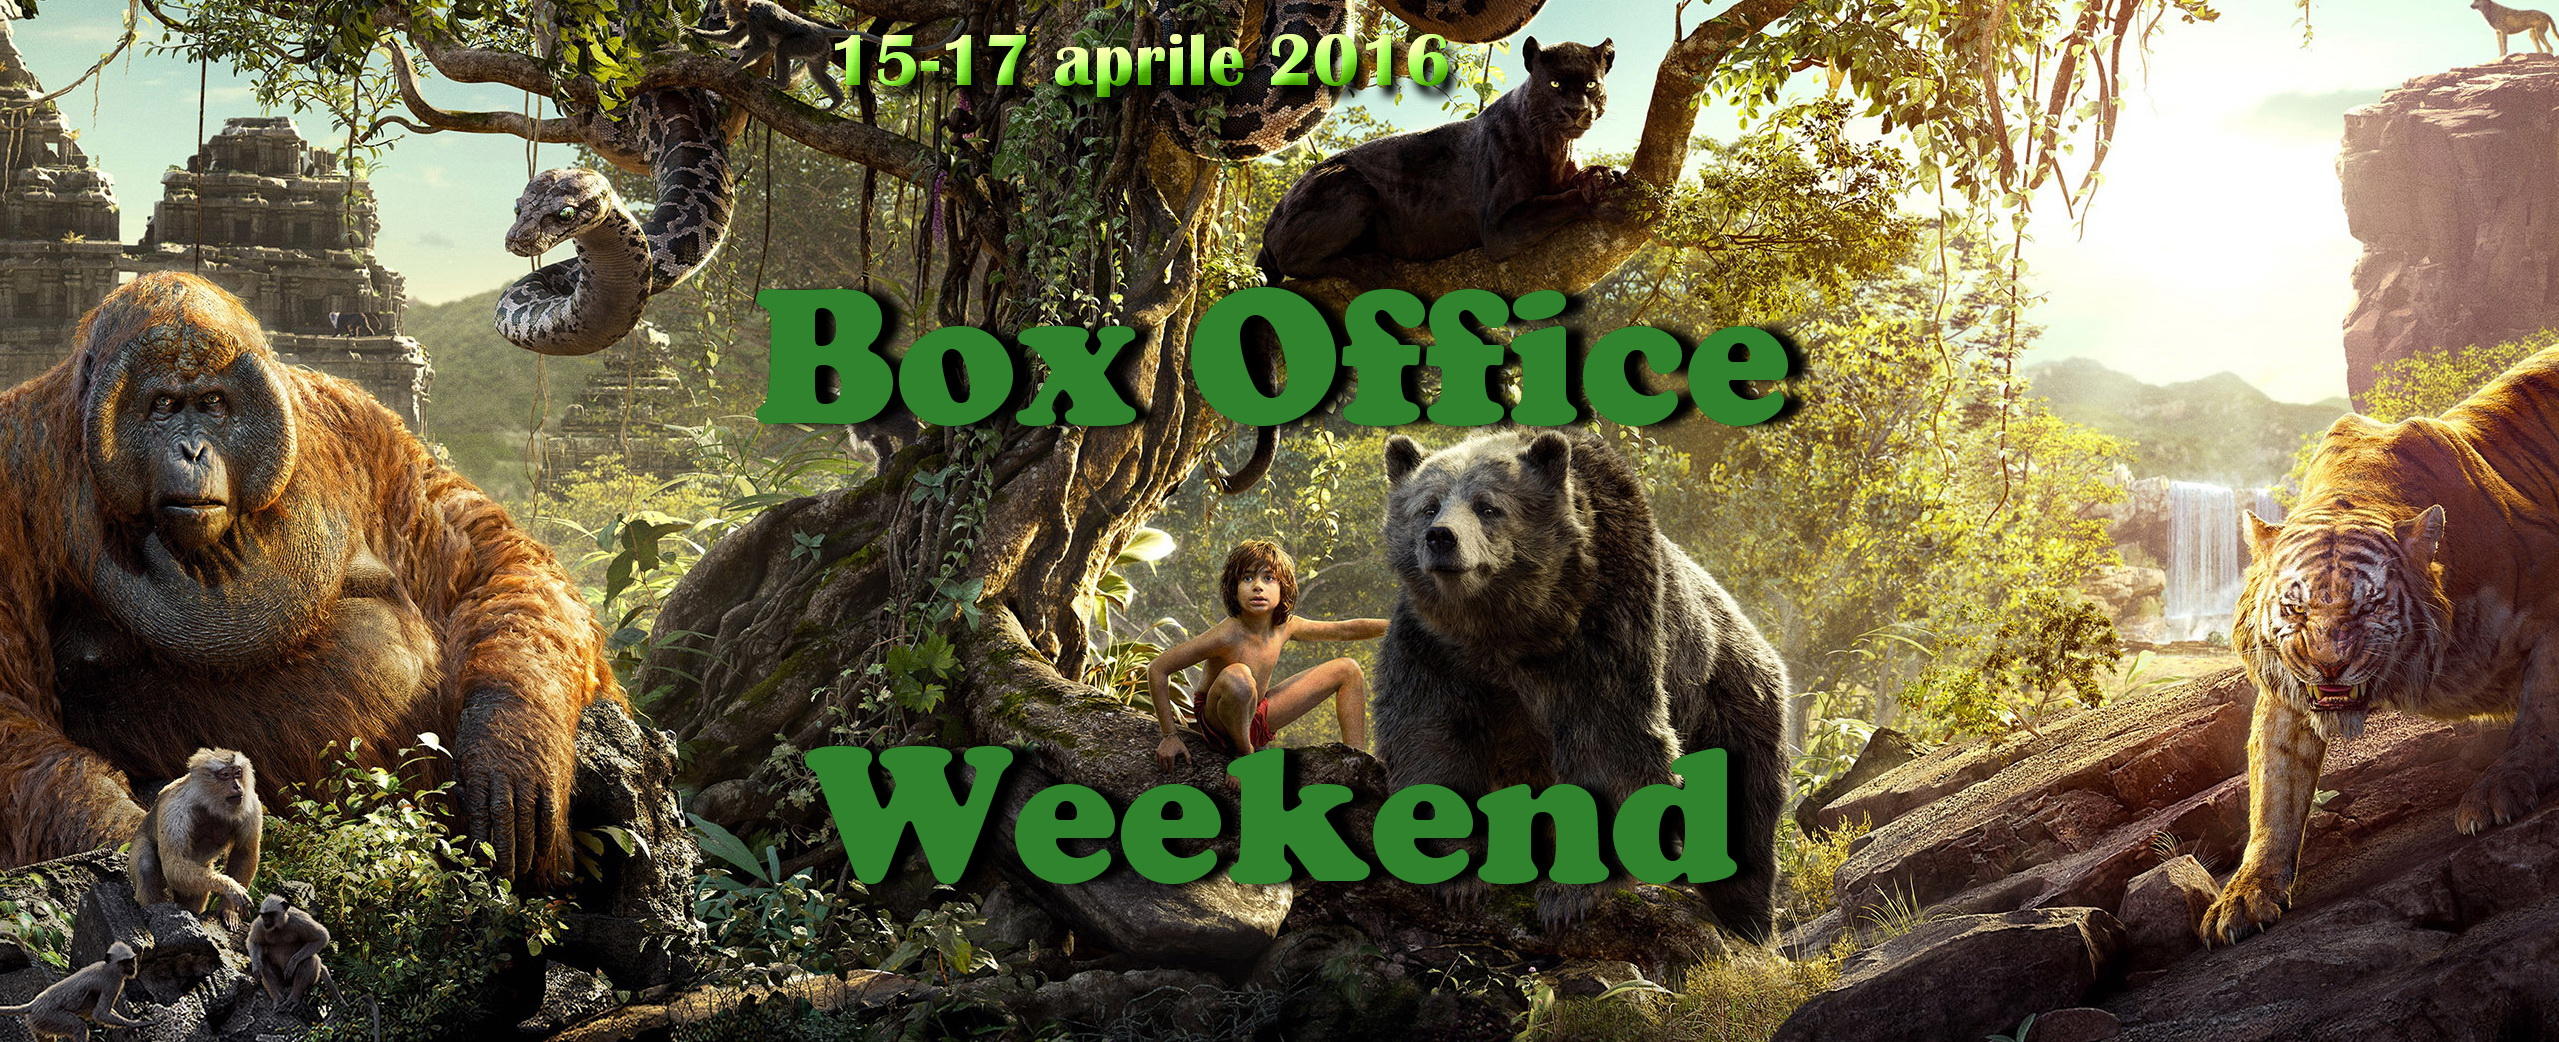 "Nuovo appuntamento con ""Box Office Weekend"" e gli incassi del fine settimana cinematografico. Come ampiamente previsto, la versione live action del classico ""Il libro della giungla"" ha stracciato la concorrenza, incassando nel […]"